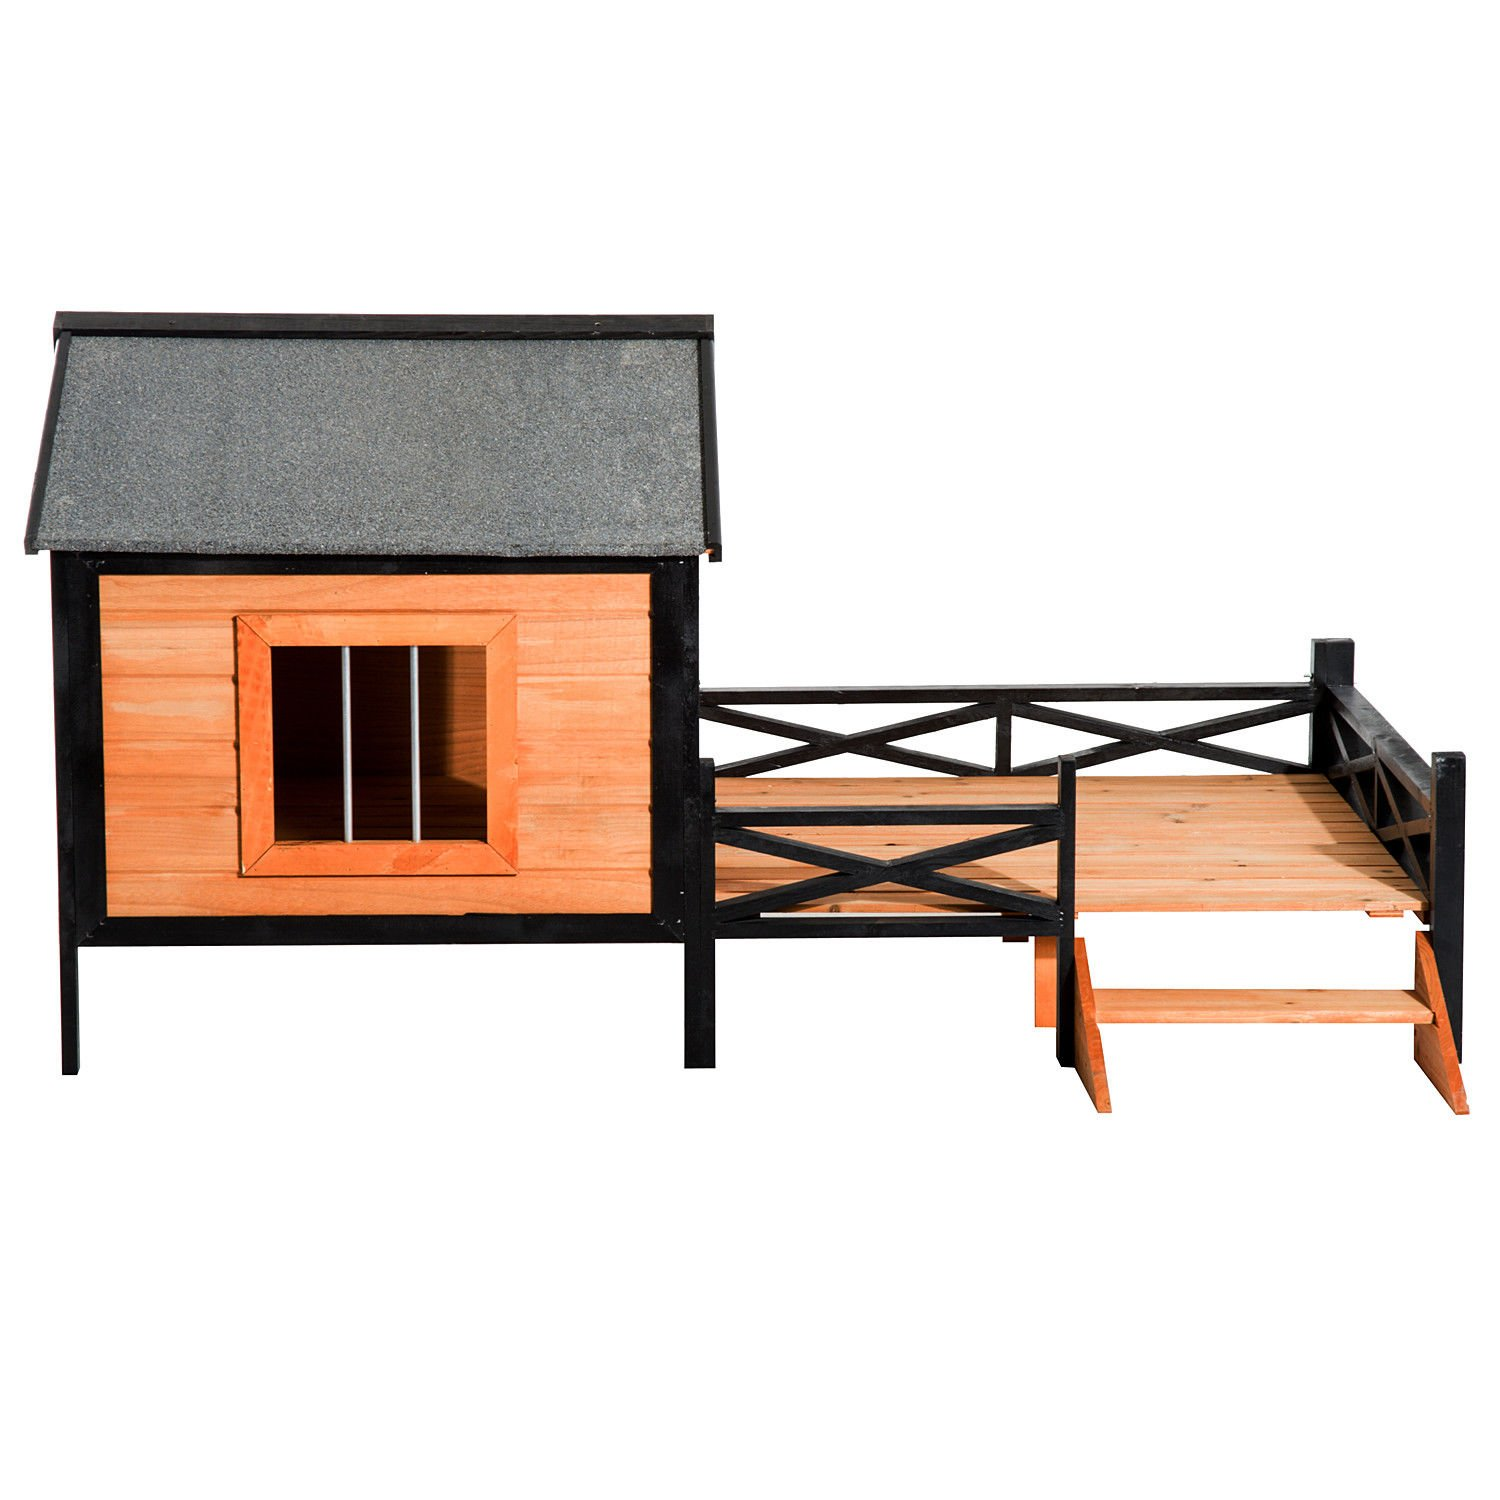 PawHut 67'' Large Wooden Cabin Style Elevated Outdoor Dog House with Porch by PawHut (Image #3)